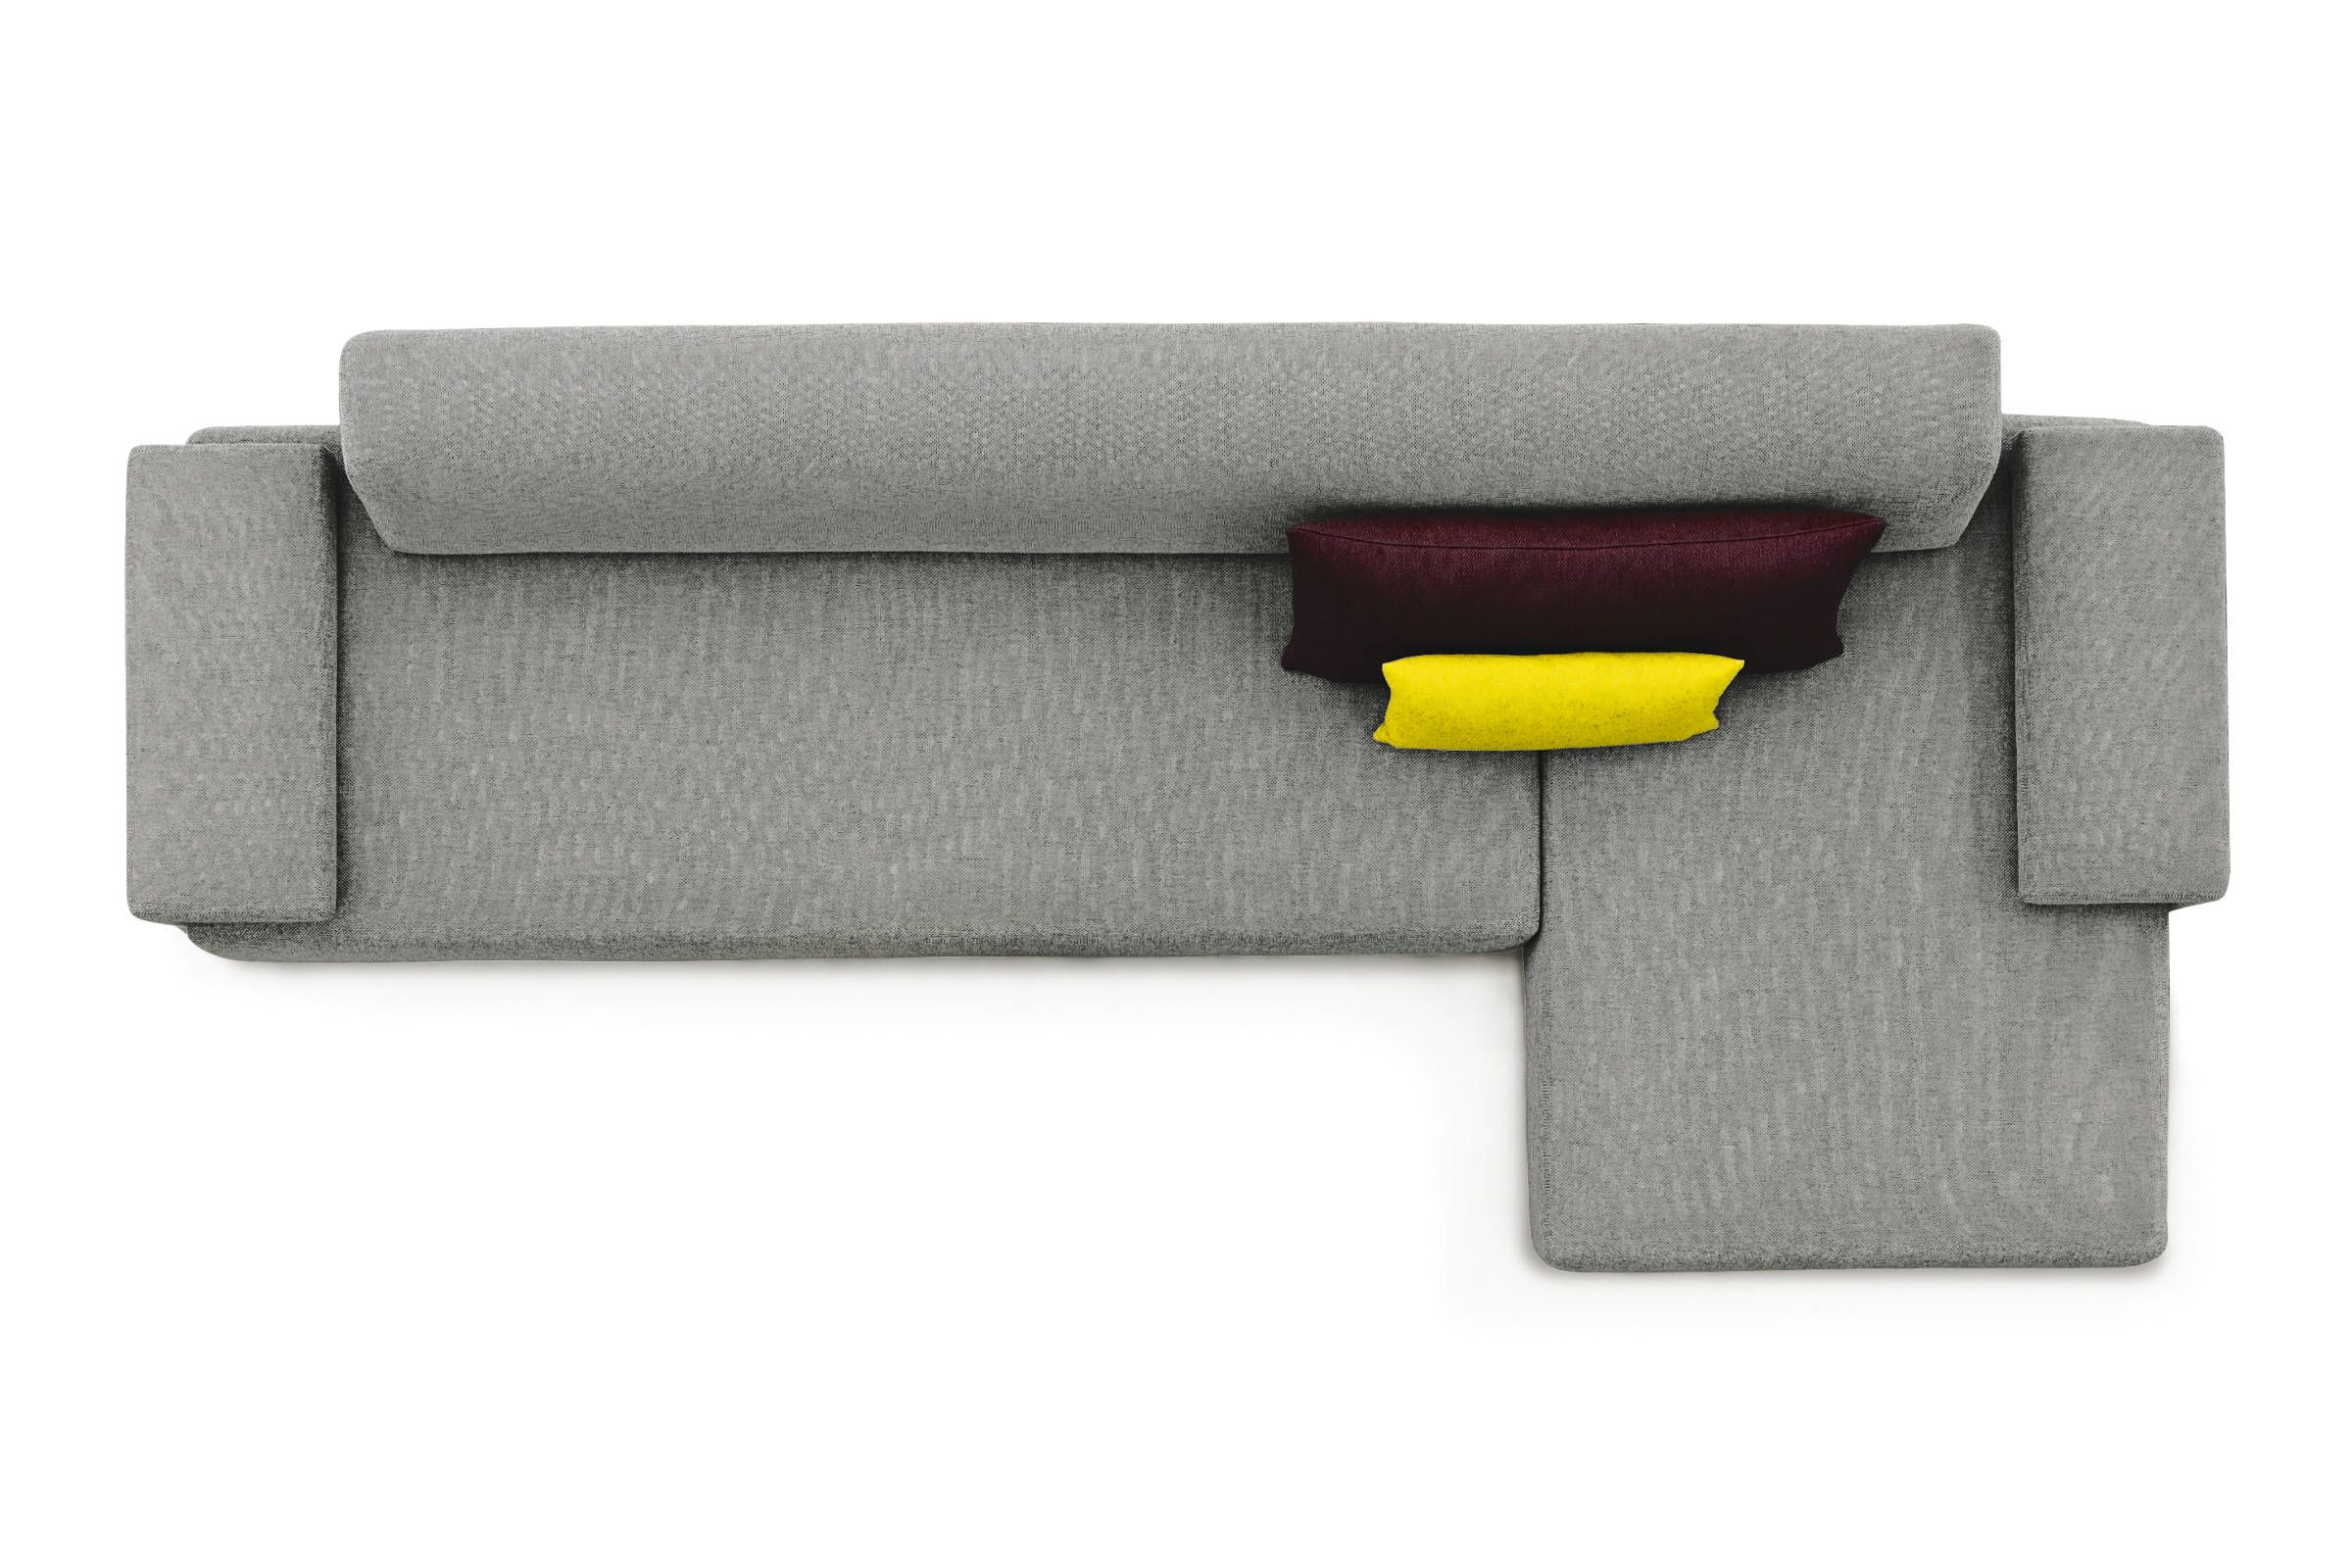 Sofas Seating M a s s a s Sofa Moroso Patricia Urquiola Check it on Architonic 520 3rd Pinterest